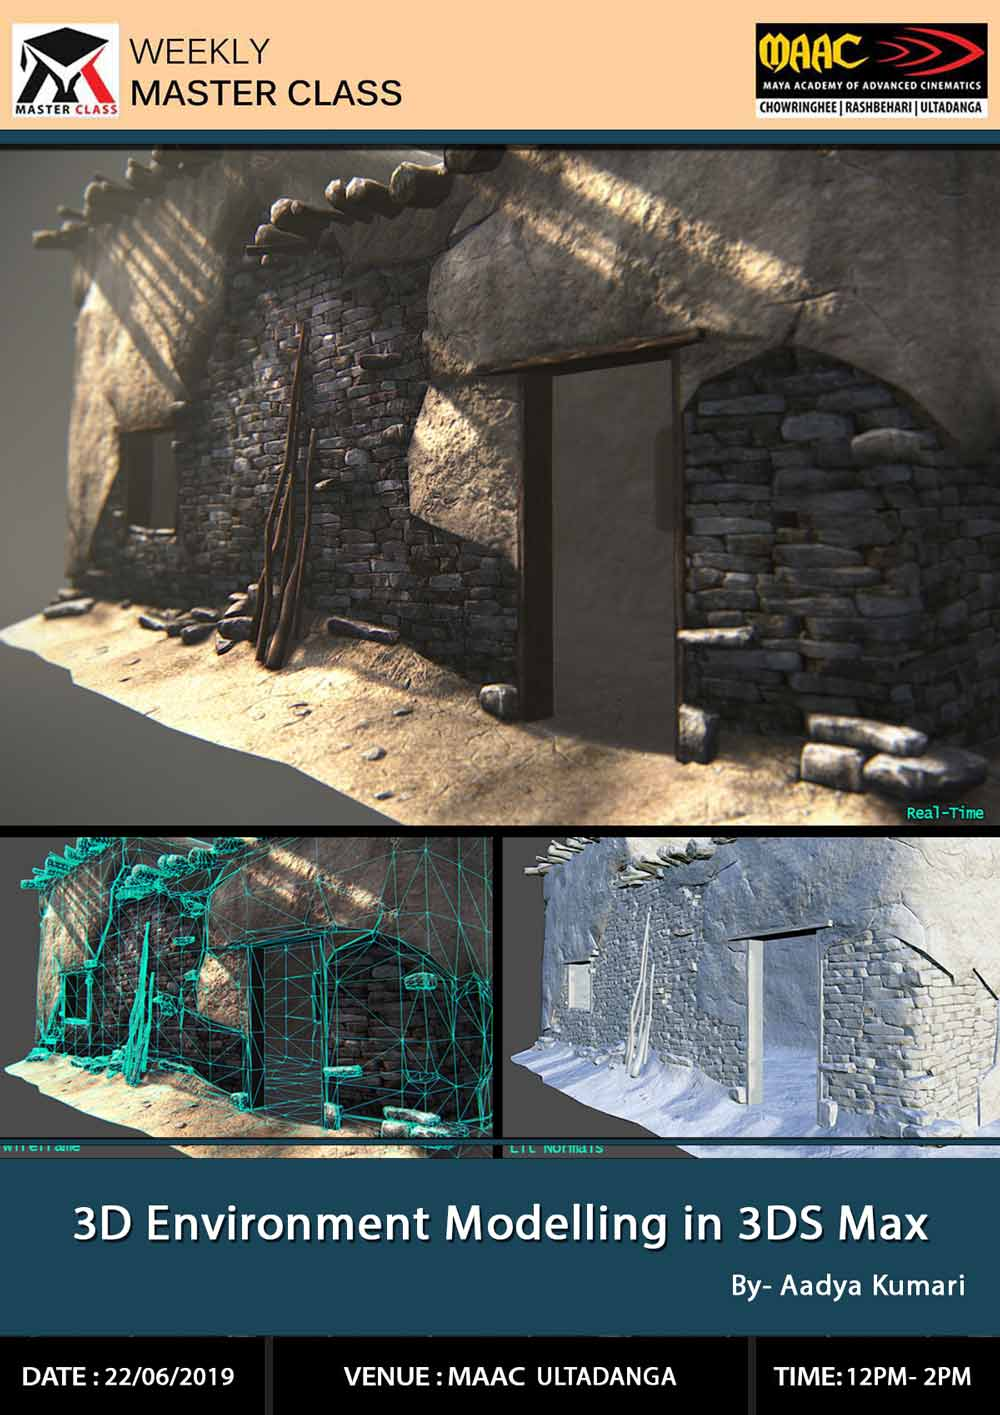 Weekly Master Class on 3D Environment Modelling in 3Ds Max